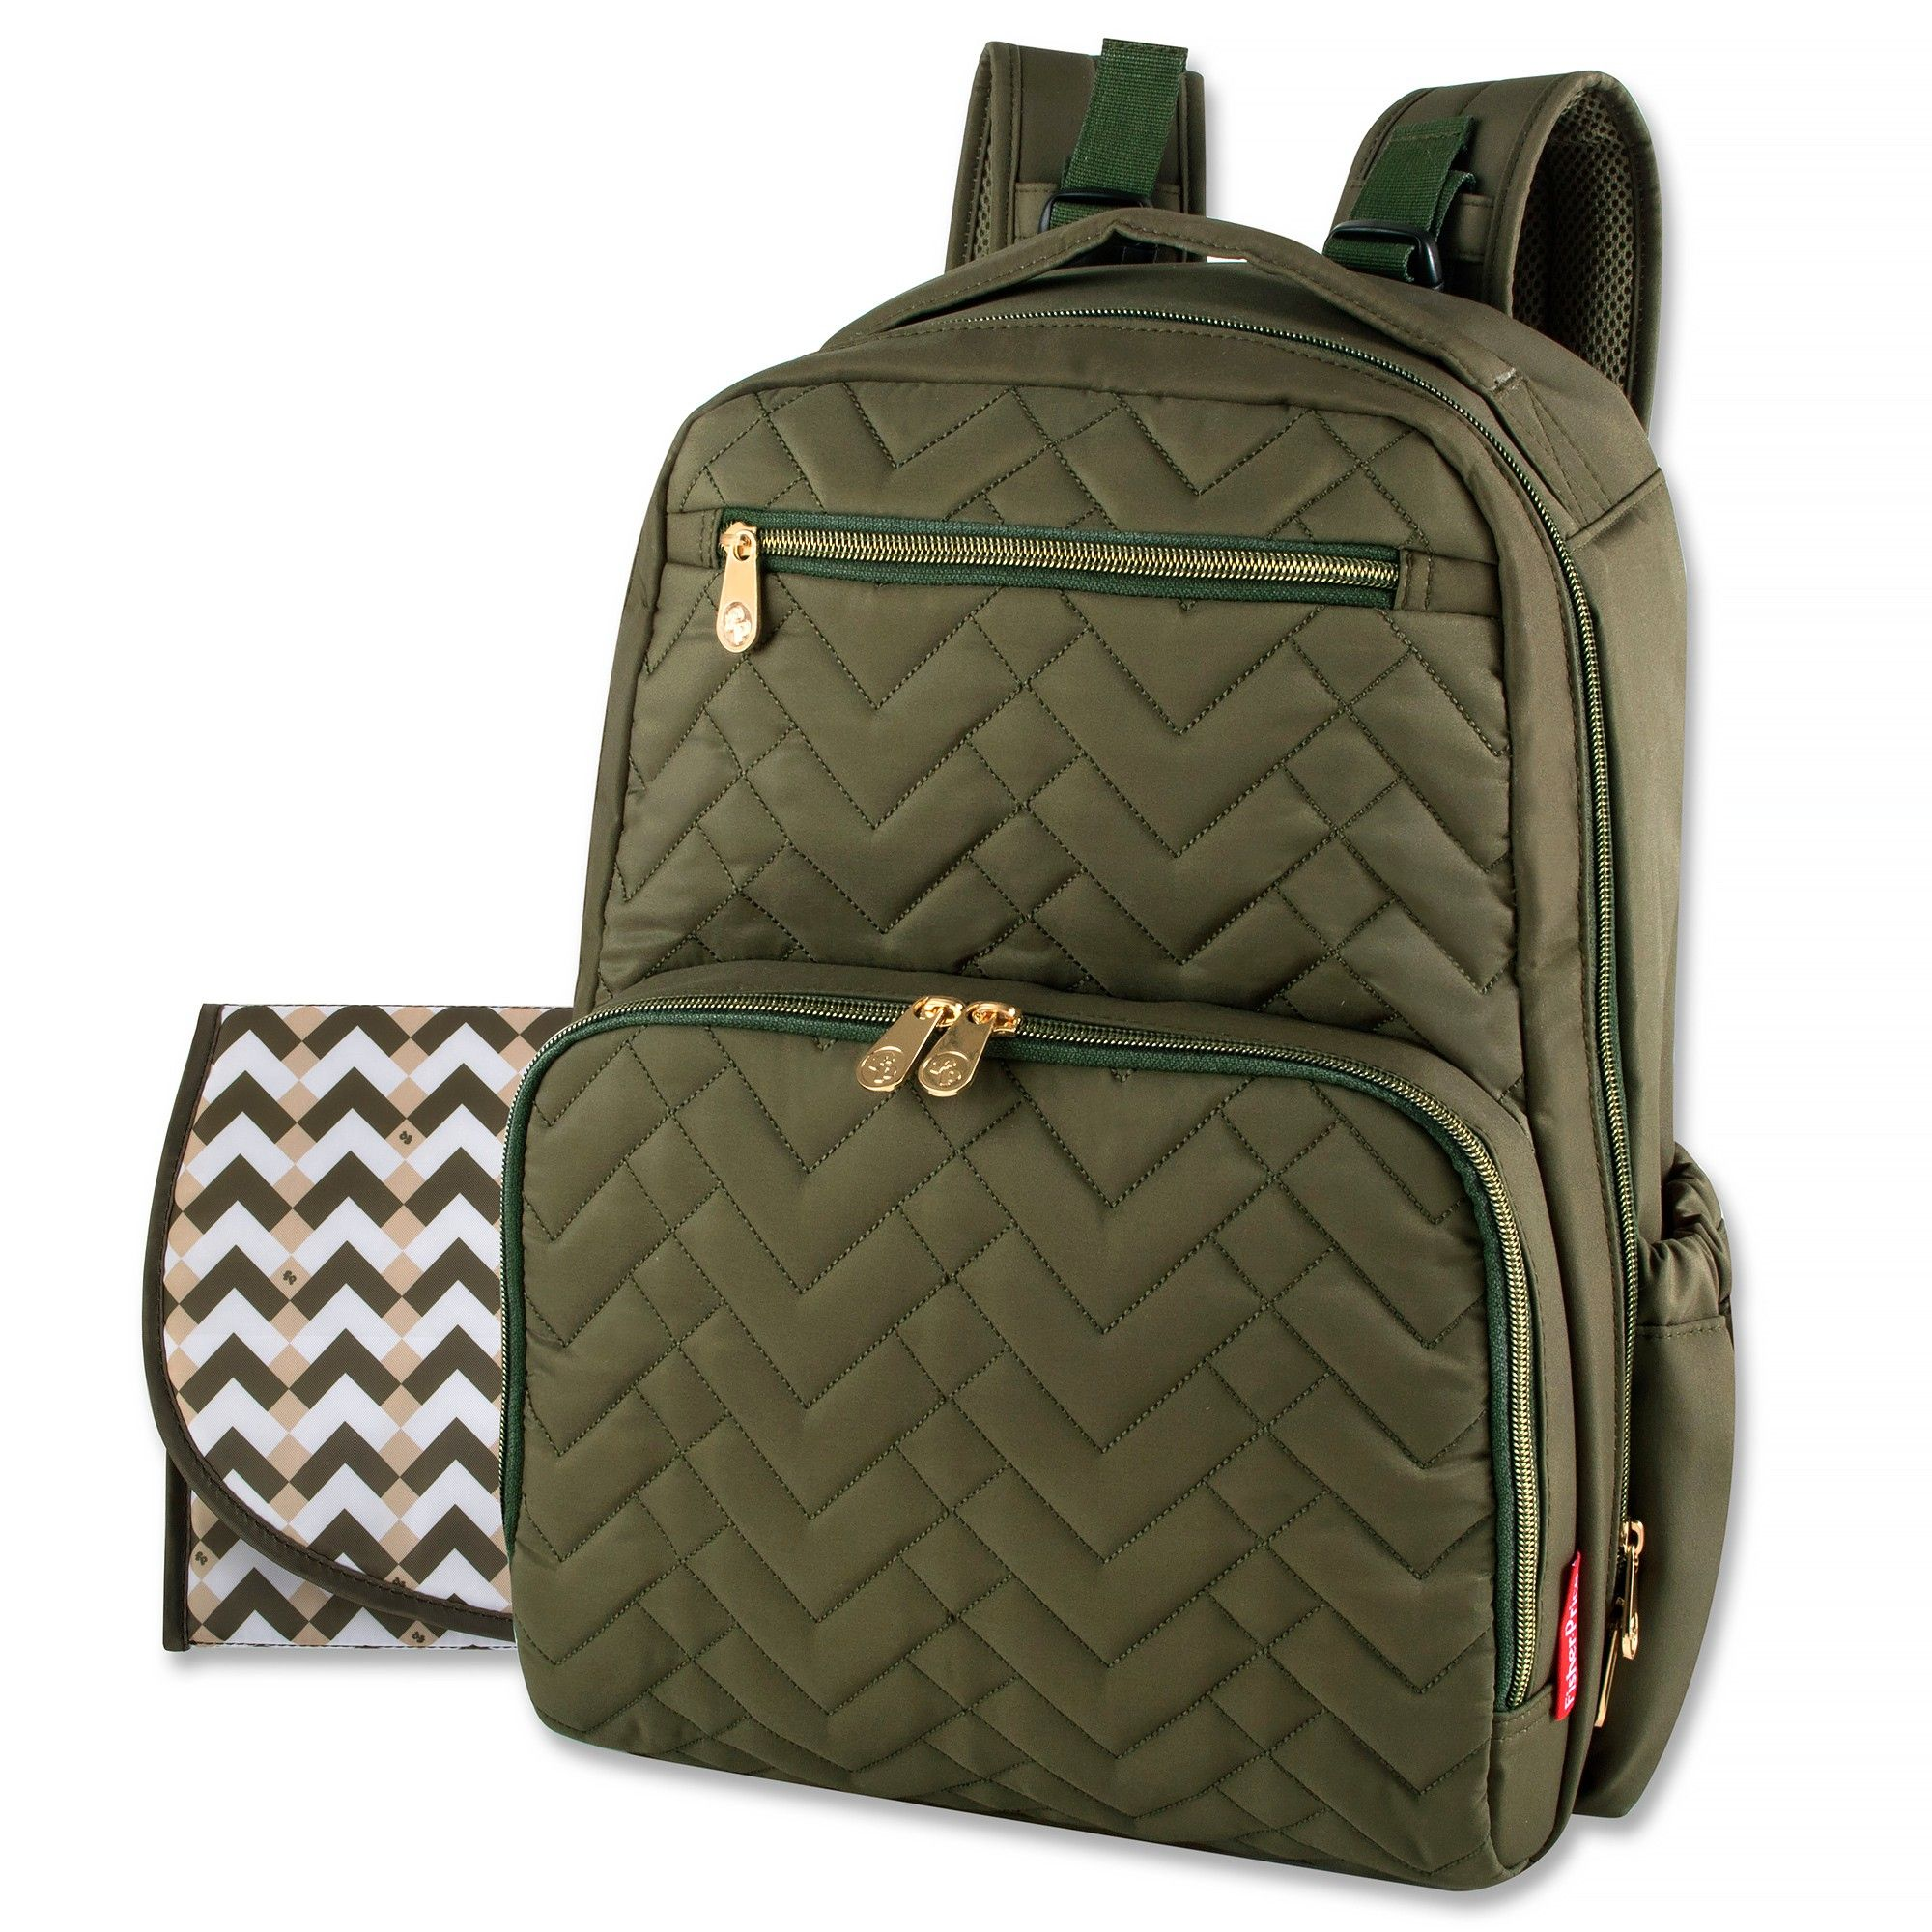 Fisher-Price Morgan Quilted Diaper Backpack - Olive (Green ... 643c608721